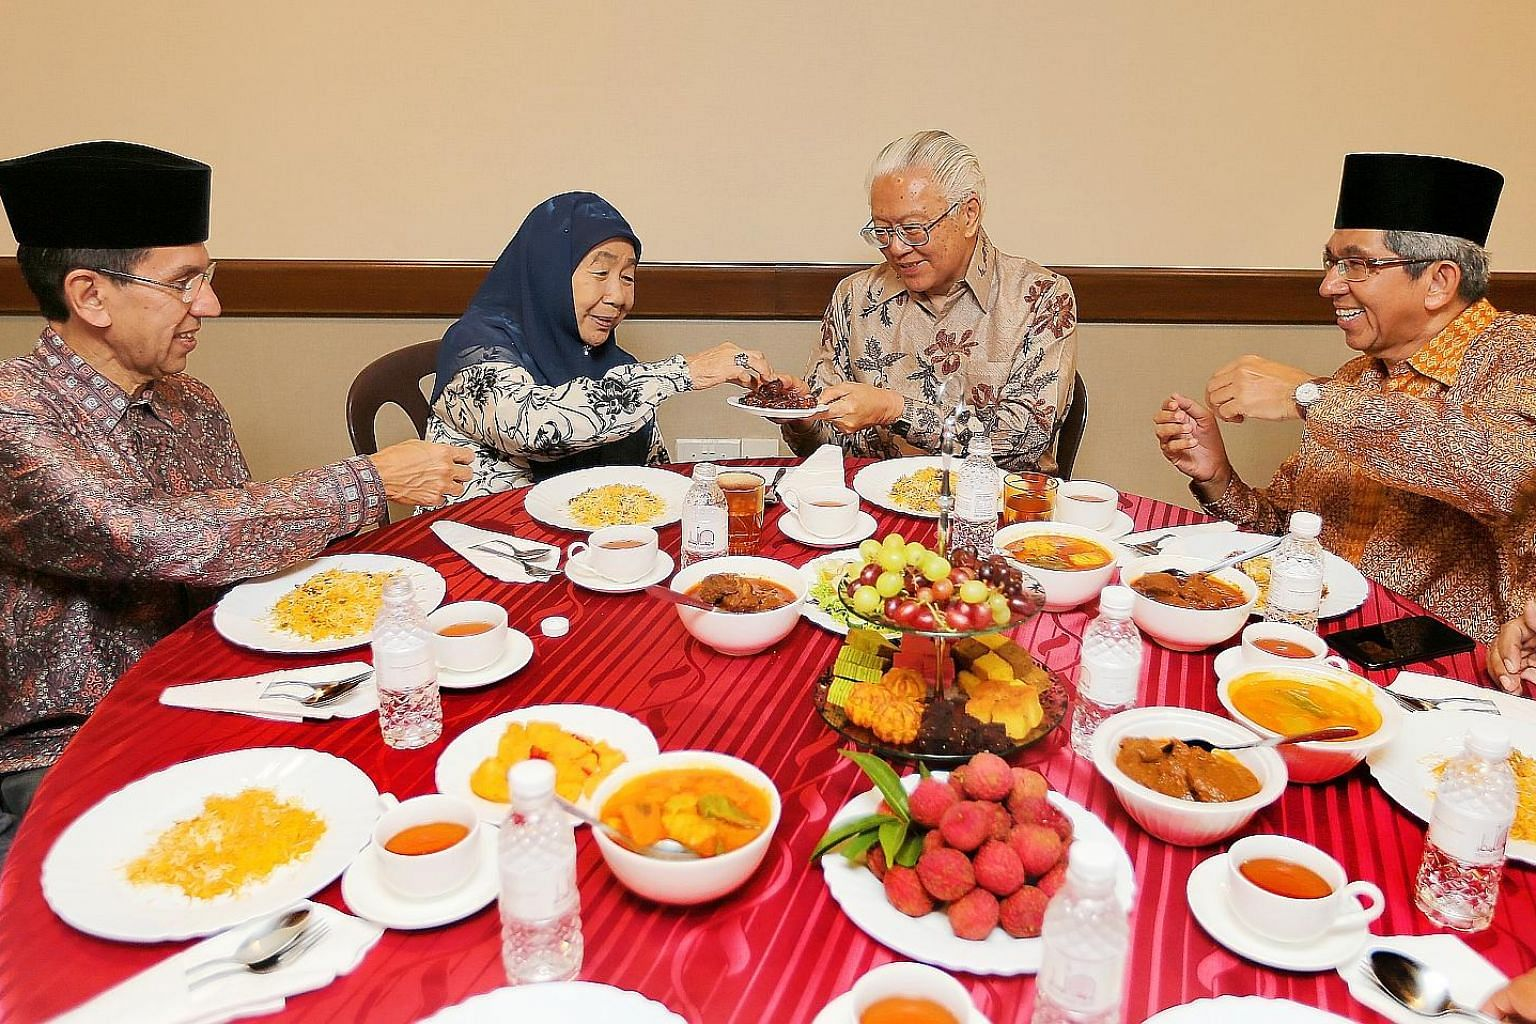 President Tony Tan Keng Yam joined about 400 congregants at an iftar, or breaking of fast, session at Yusof Ishak Mosque (Masjid Yusof Ishak) yesterday. It was his first visit to the recently opened mosque in Woodlands, which is named after Singapore